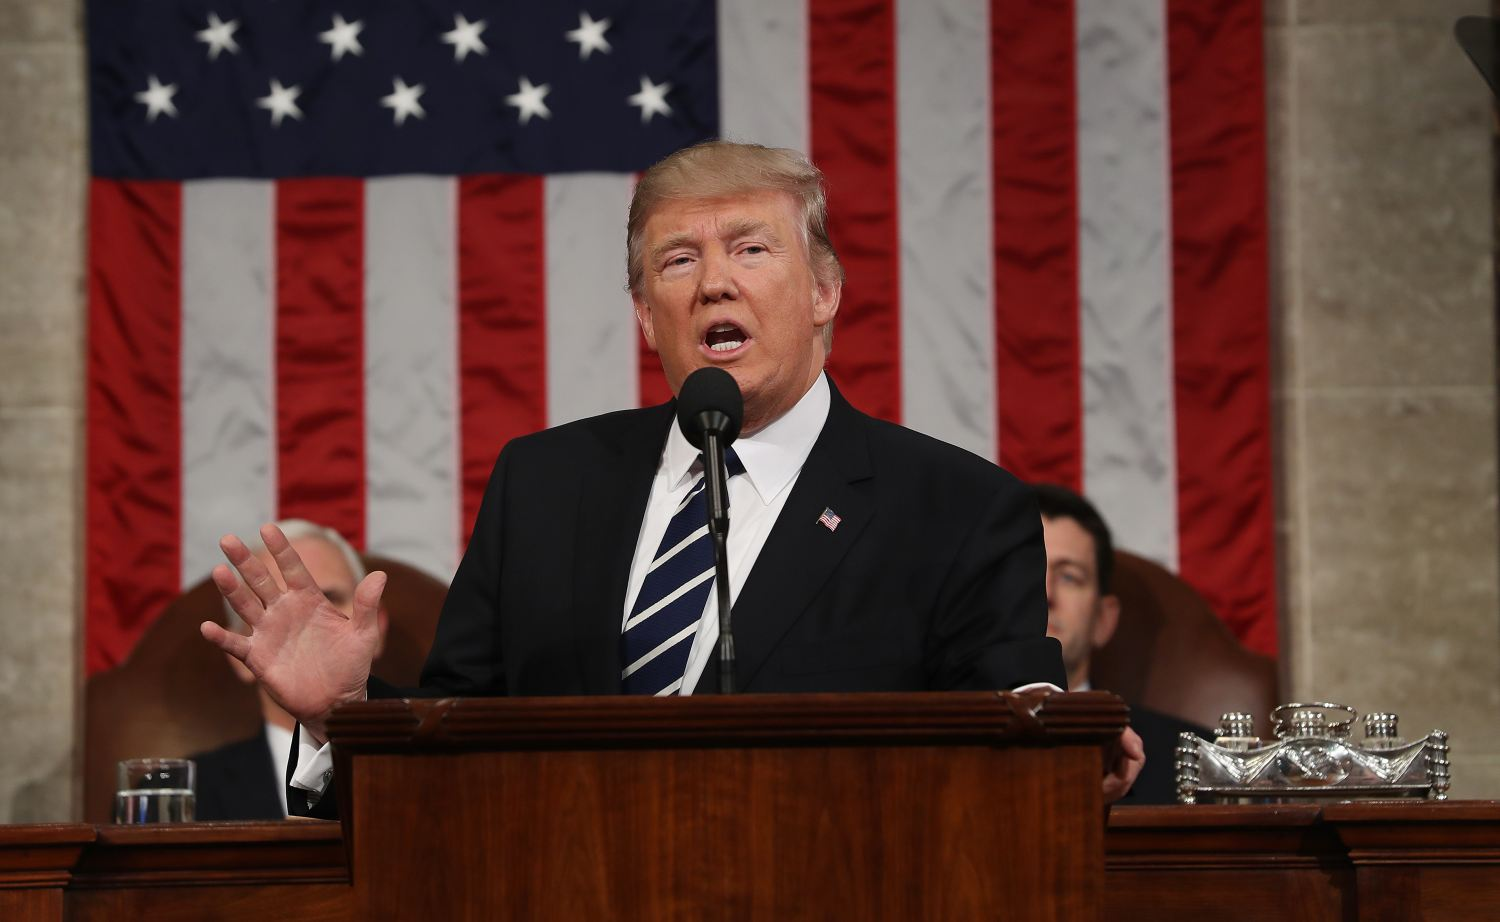 U.S. President Donald Trump addresses a joint session of the U.S. Congress on February 28, 2017.